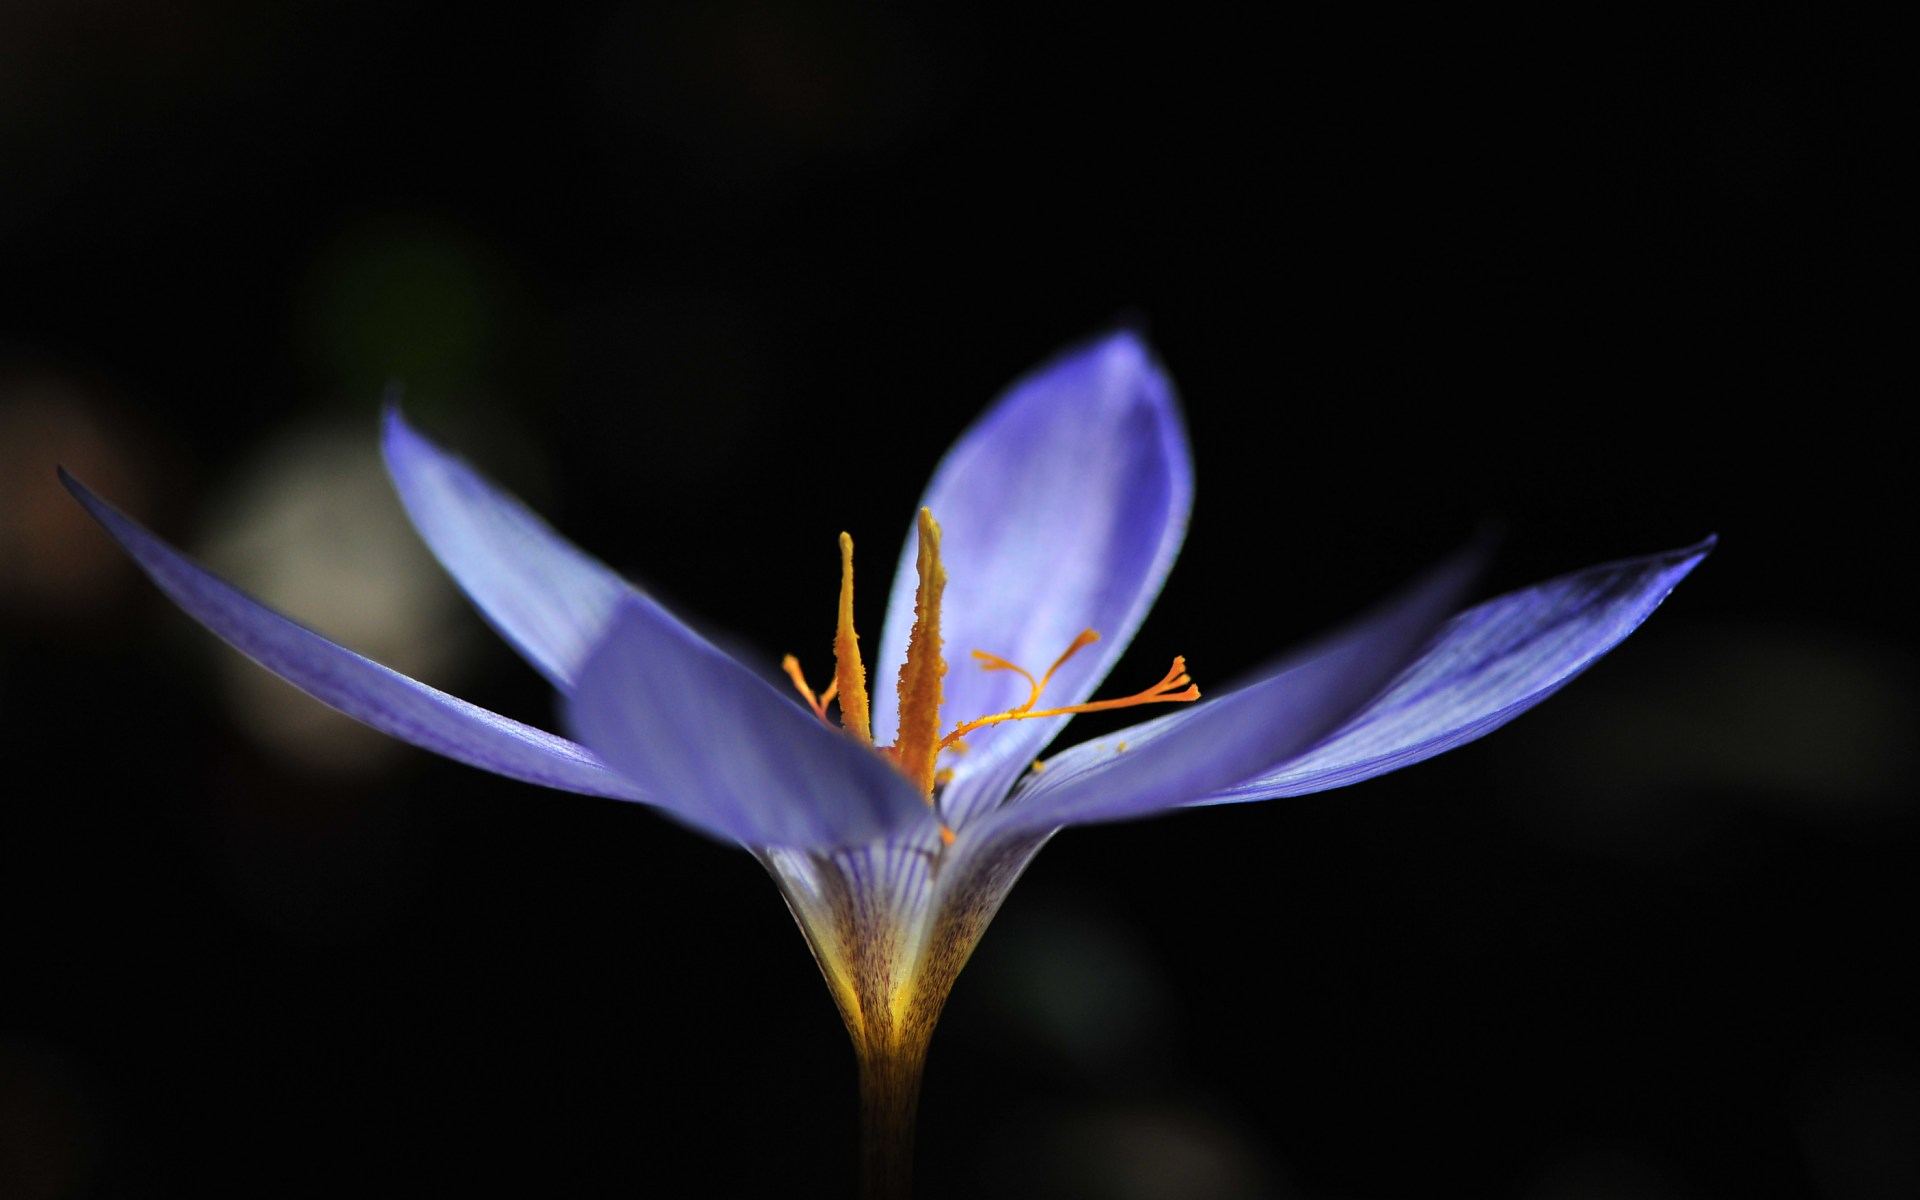 crocus flower picture hd